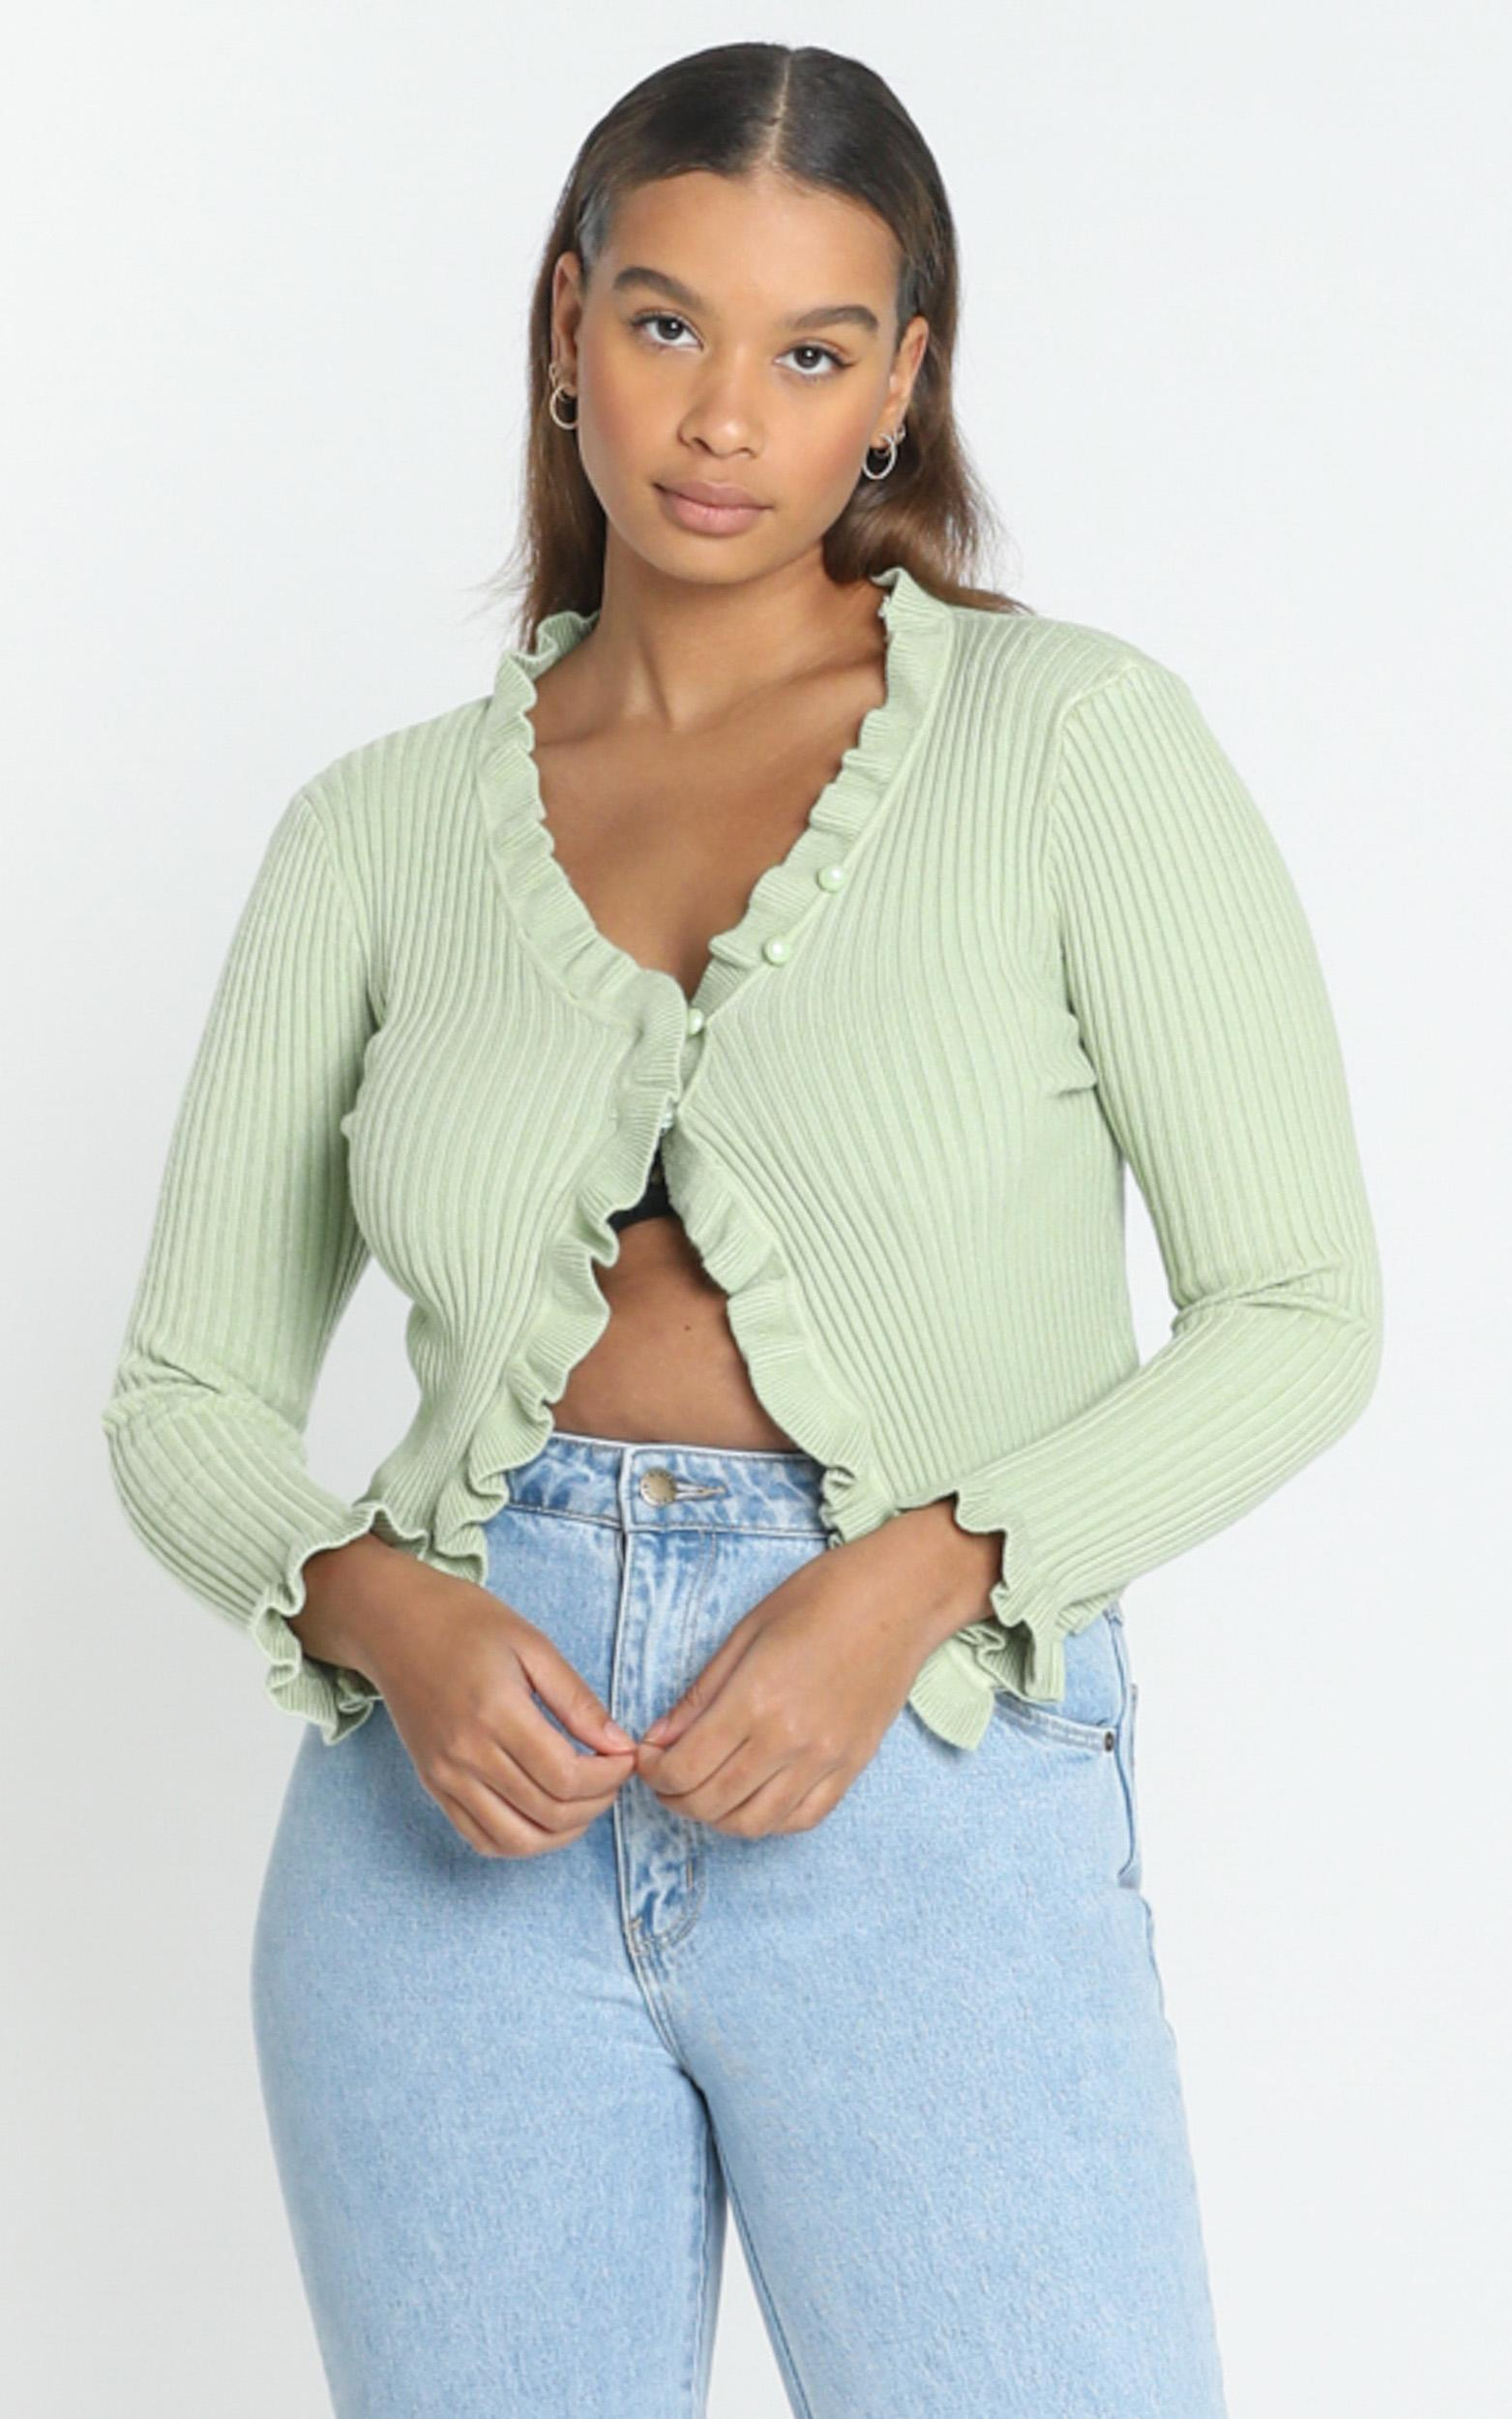 Broden Knit Top in Green - 12 (L), GRN1, hi-res image number null